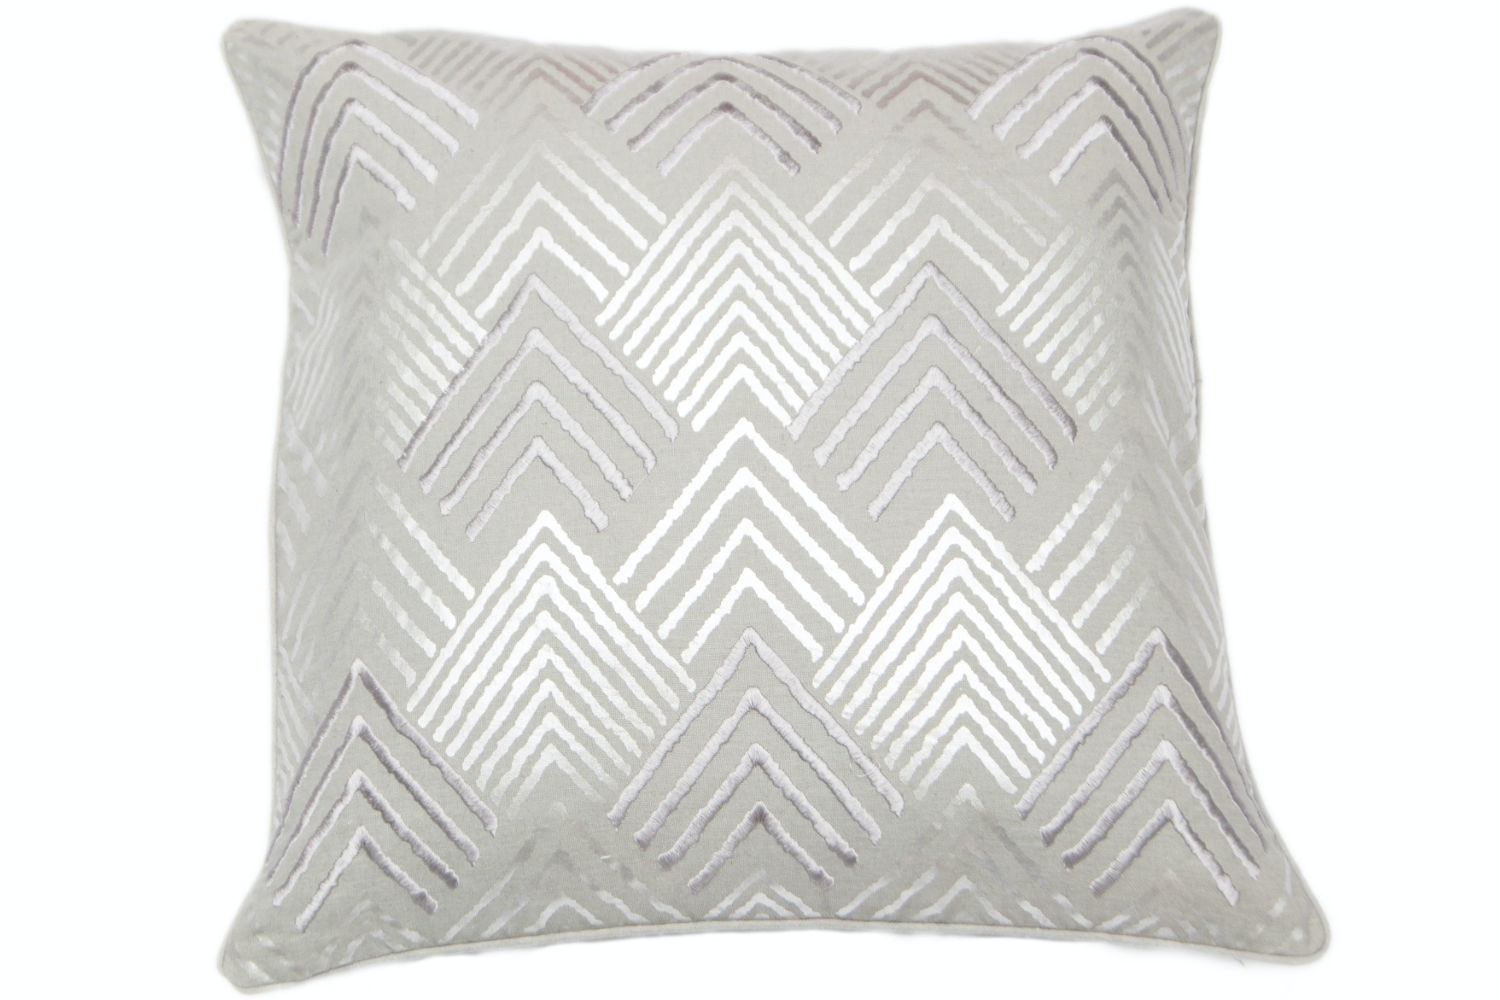 Geometric Silver Foil Cushion